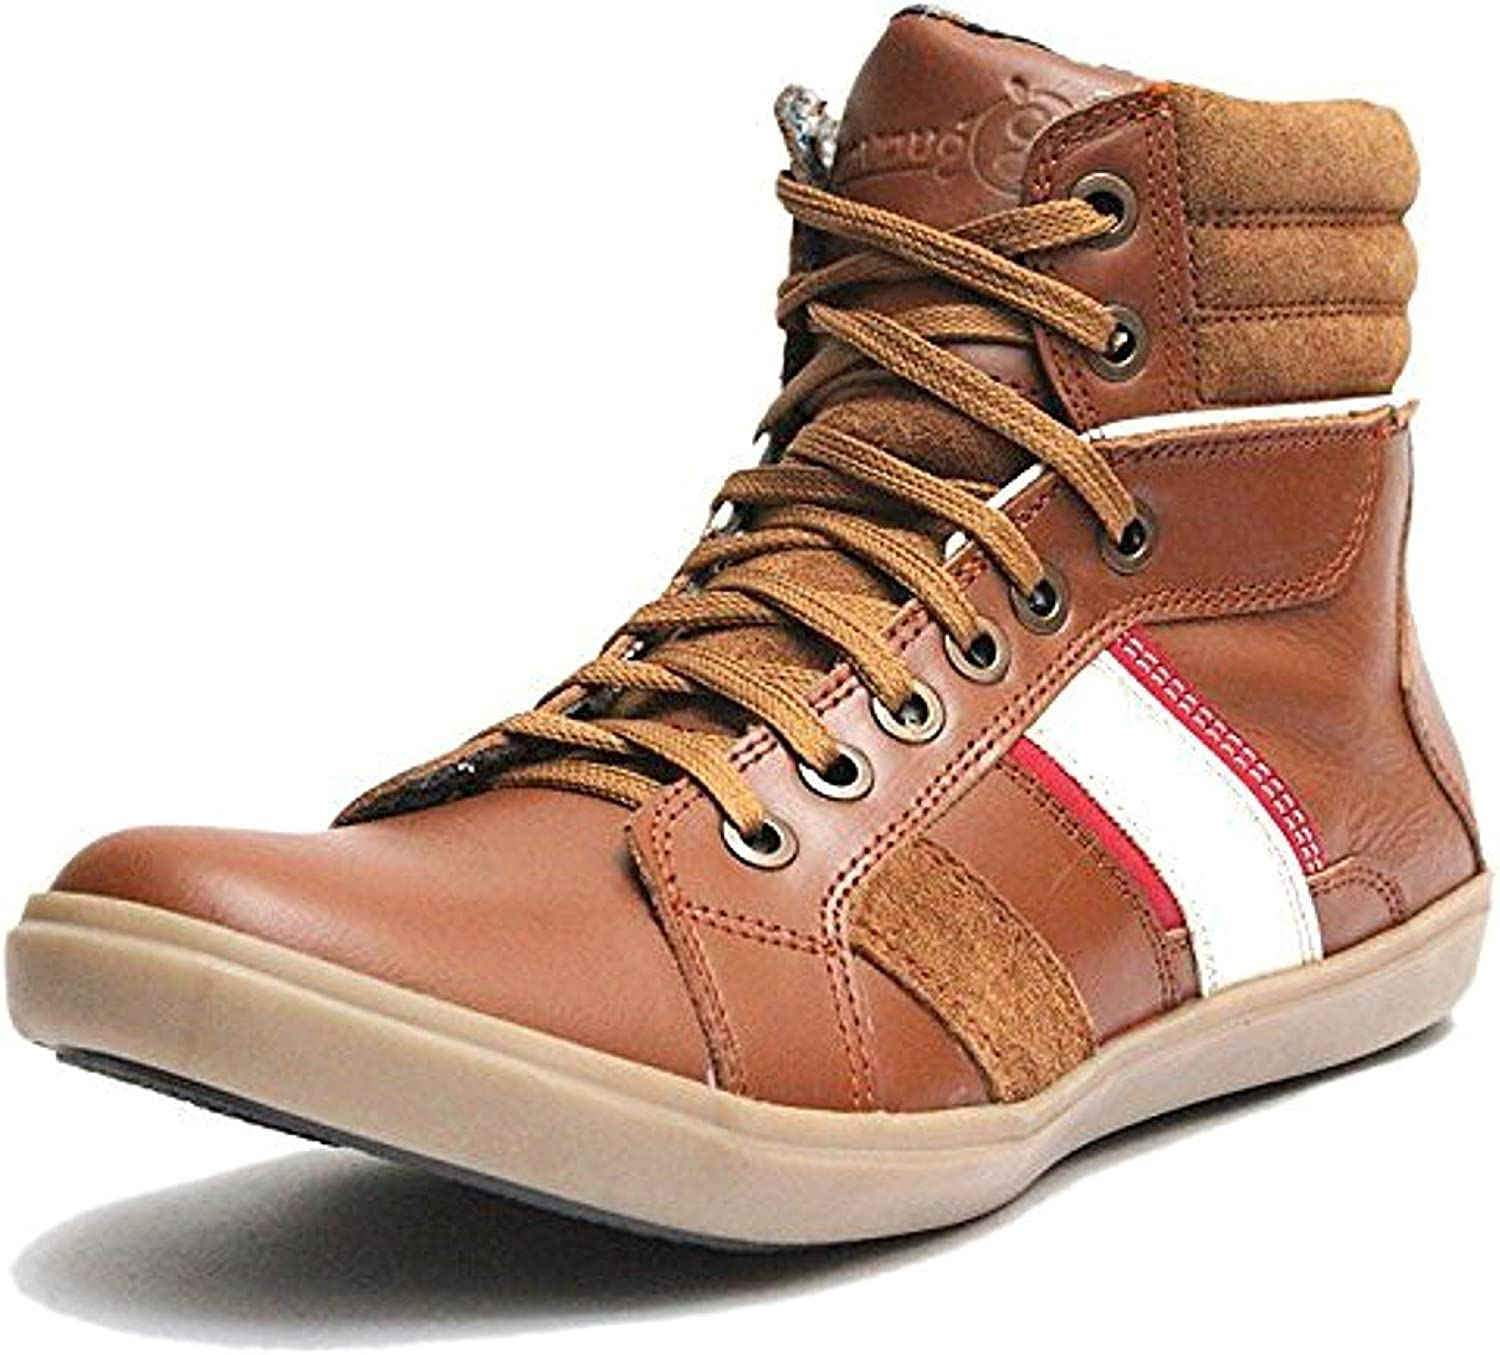 Guava Men's Classic Ankle Casuals Leather shoes